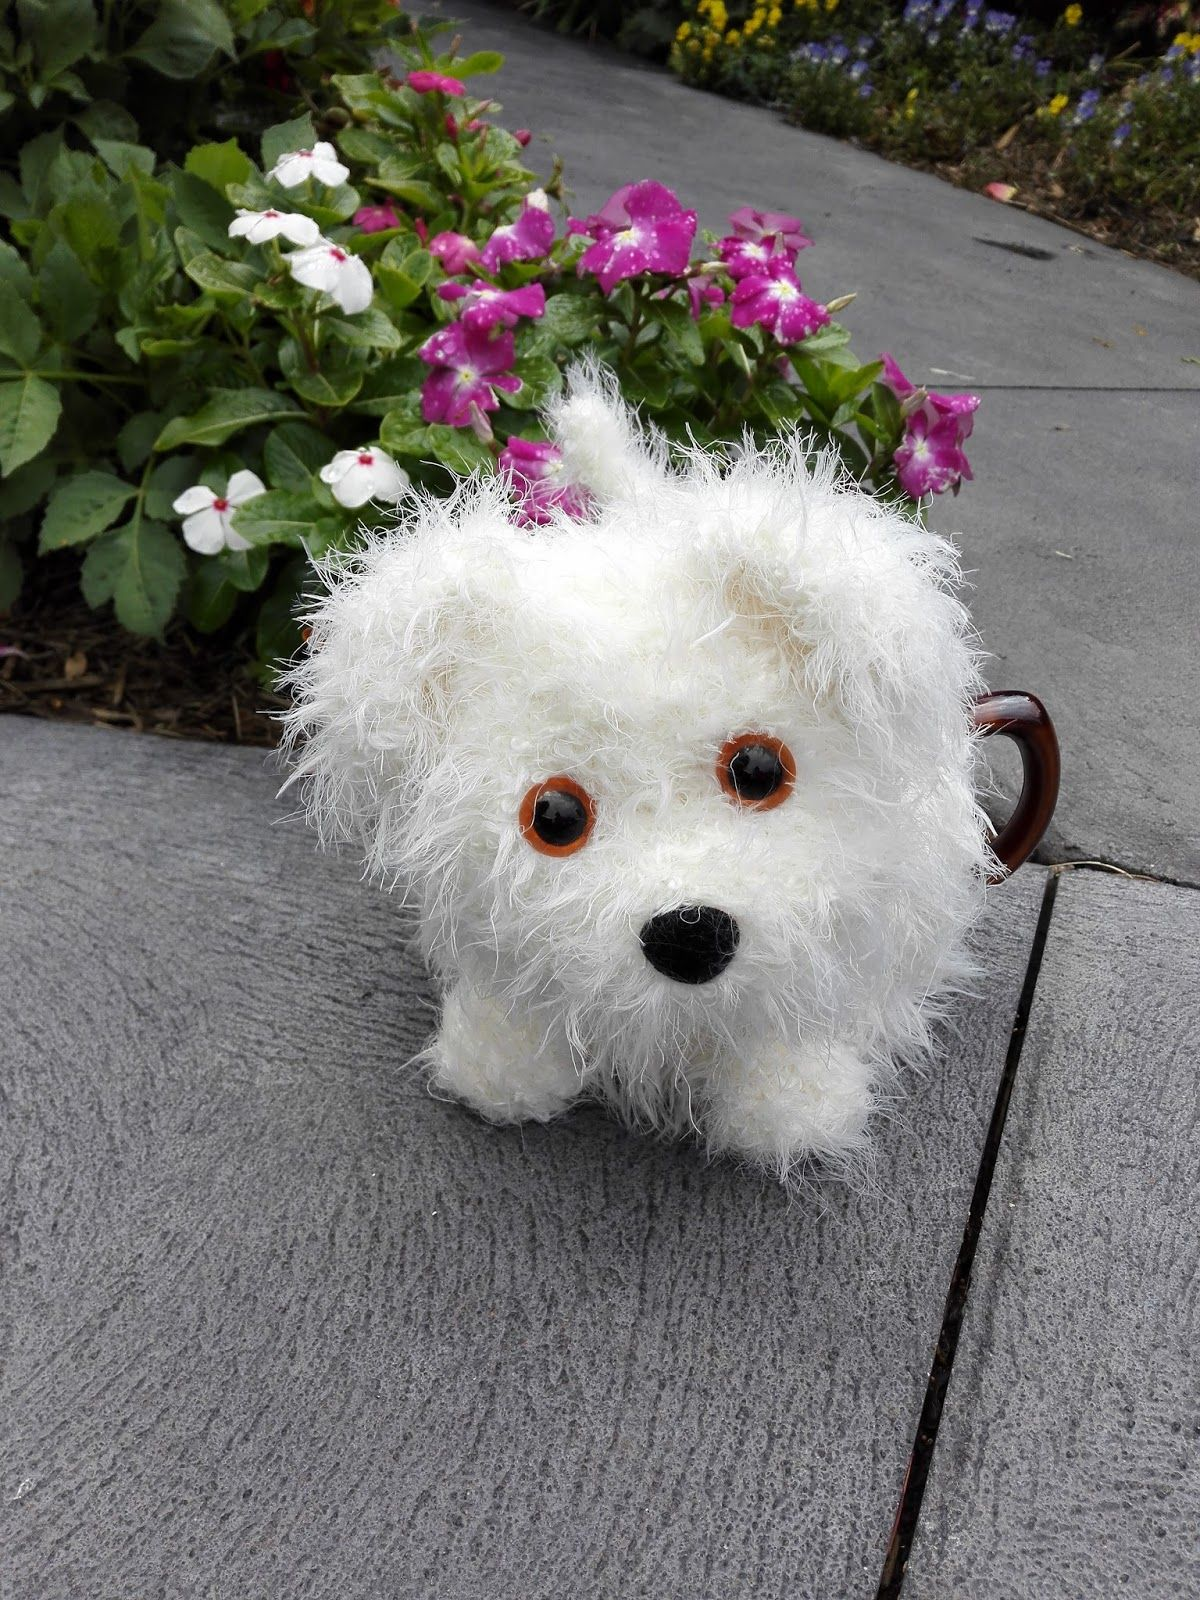 This is the revised version of the little white dog tea cosy craft a cure for cancer free tea cosy patterns alfie the fluffy puppy tea cosy bankloansurffo Images